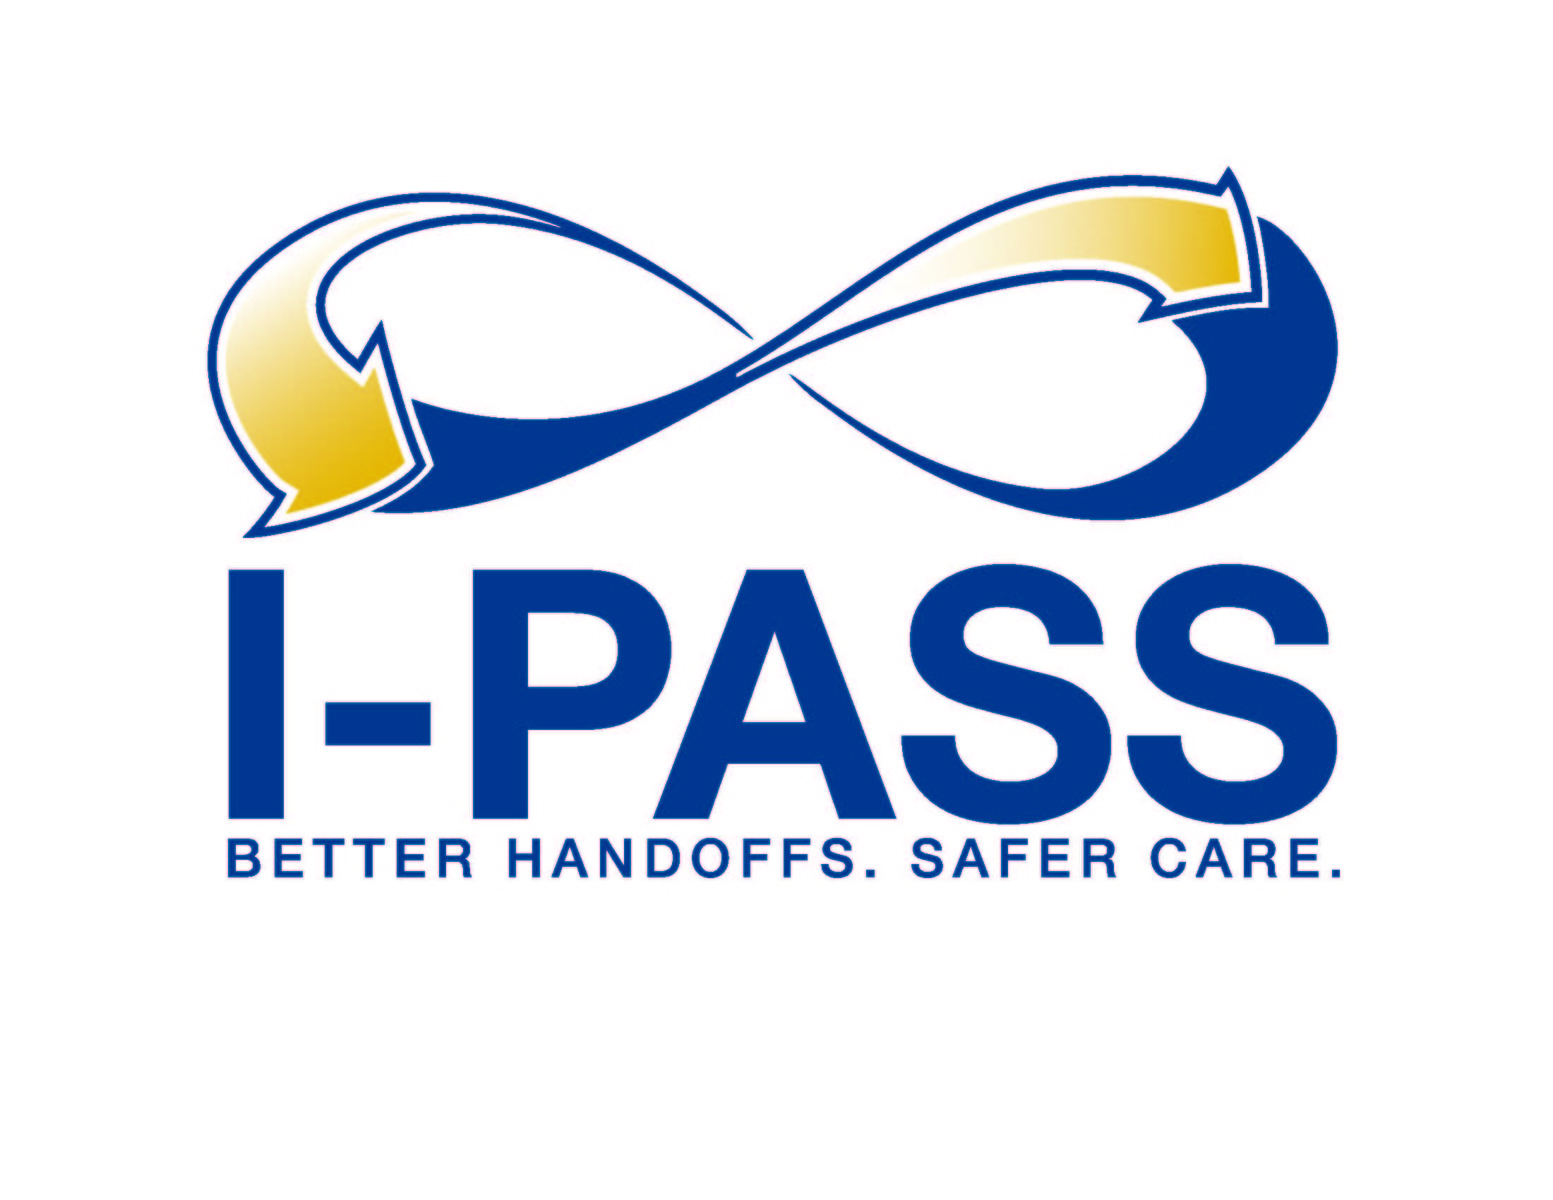 I-Pass - The I-PASS Handoff Process is a multifaceted approach to improve the exchange of information among health care providers.